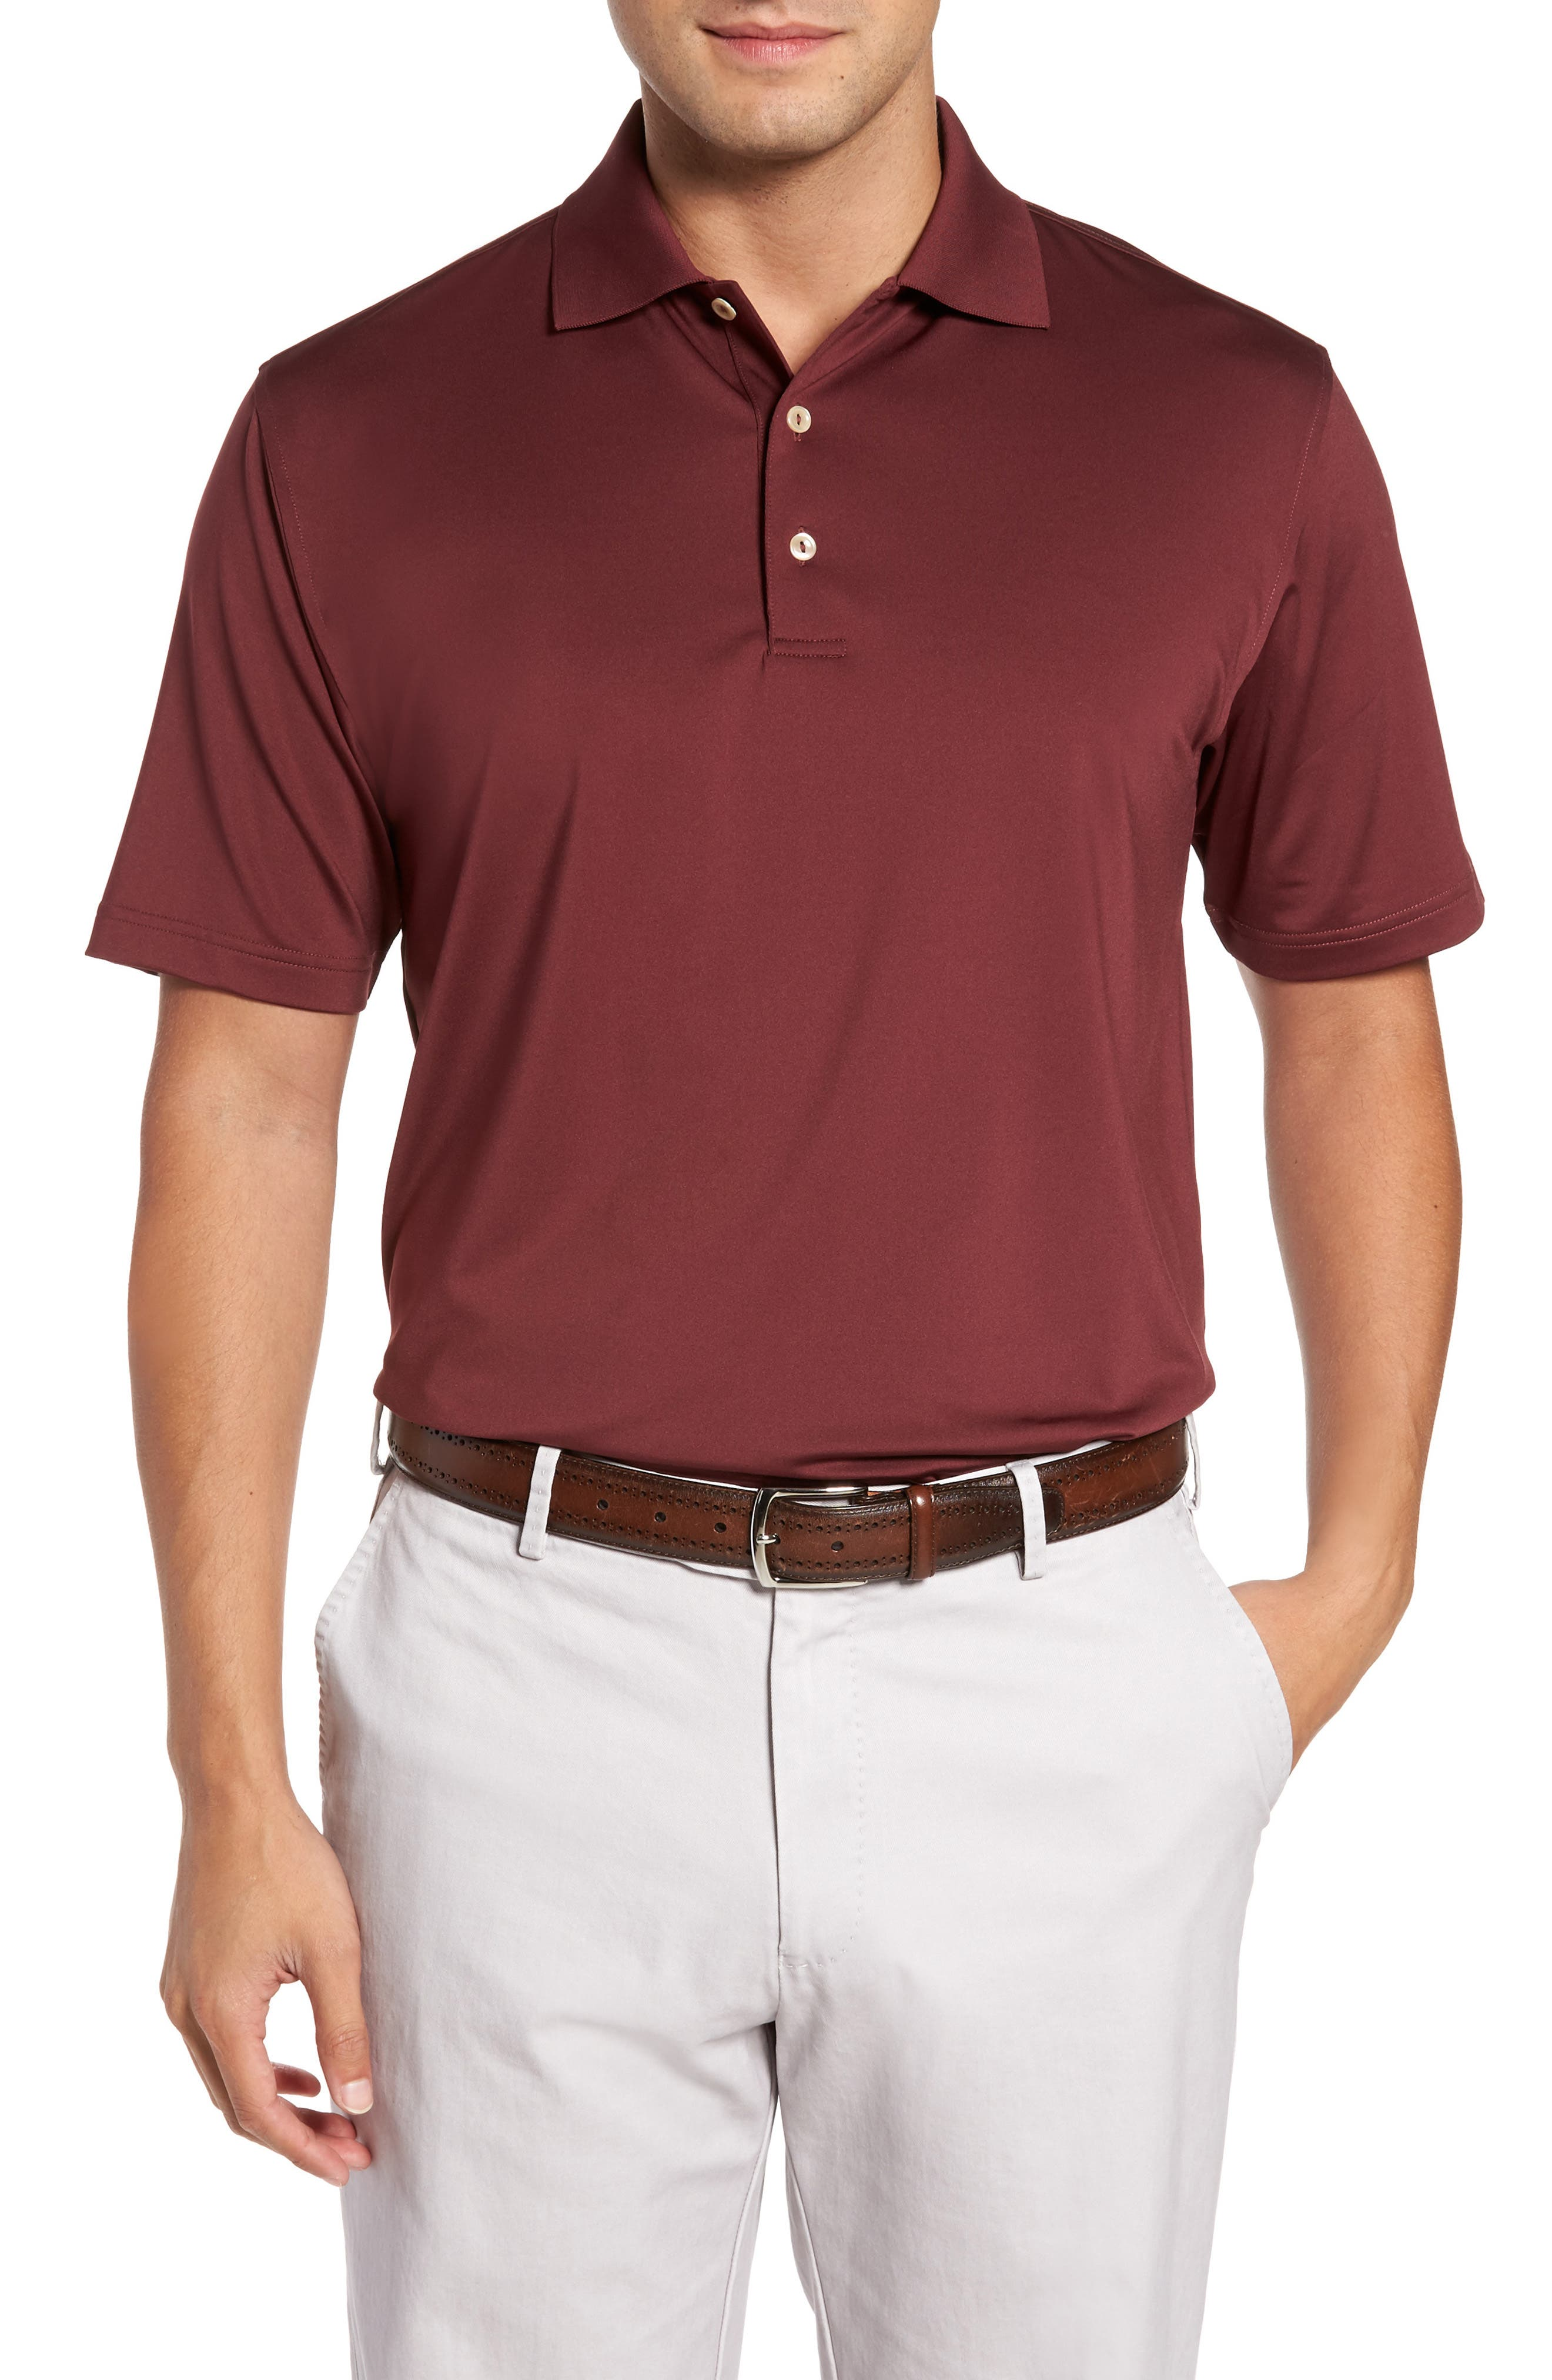 Peter Millar Stretch Knit Solid Polo